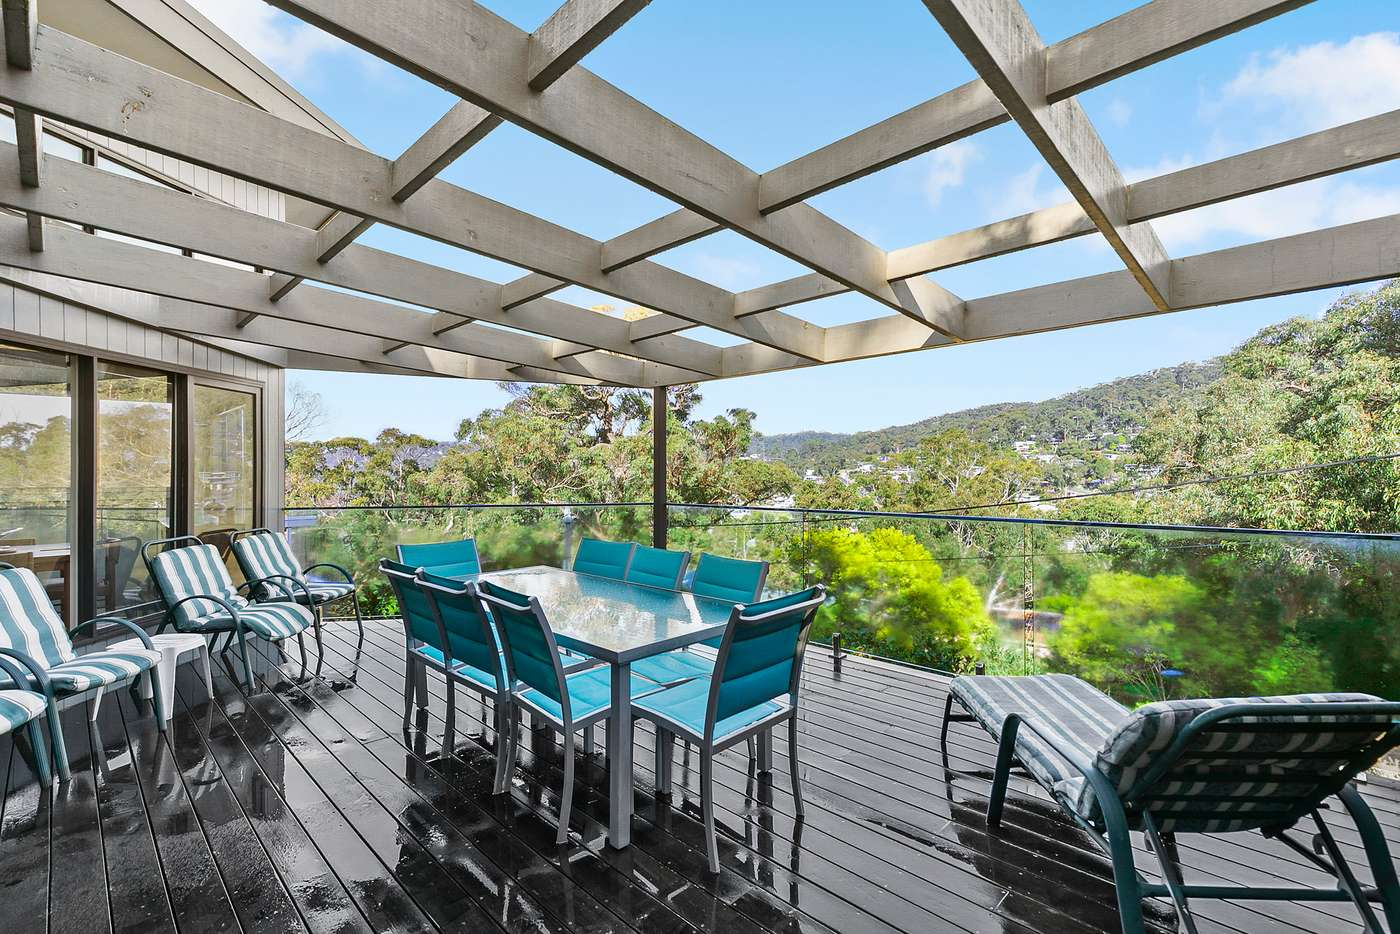 Fifth view of Homely house listing, 34 Waverley Avenue, Lorne VIC 3232